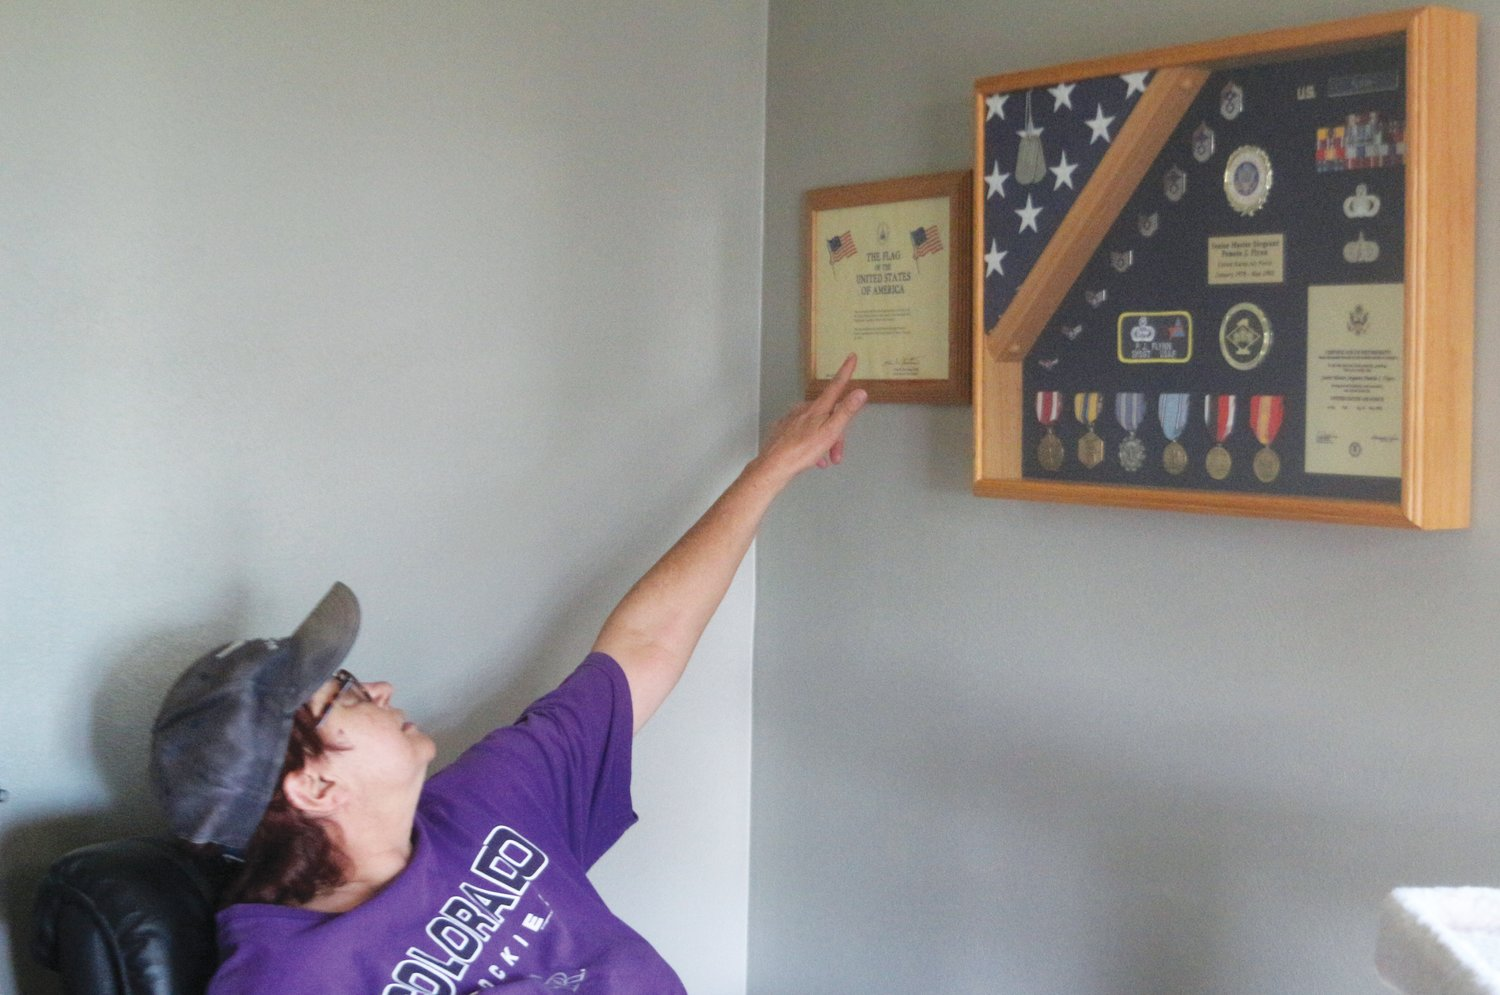 Pam Flynn, who served in the Air Force from 1978-2002 shows off her military achievements, including a flag that flew over the US Capitol building, complete with a certificate of authentication.